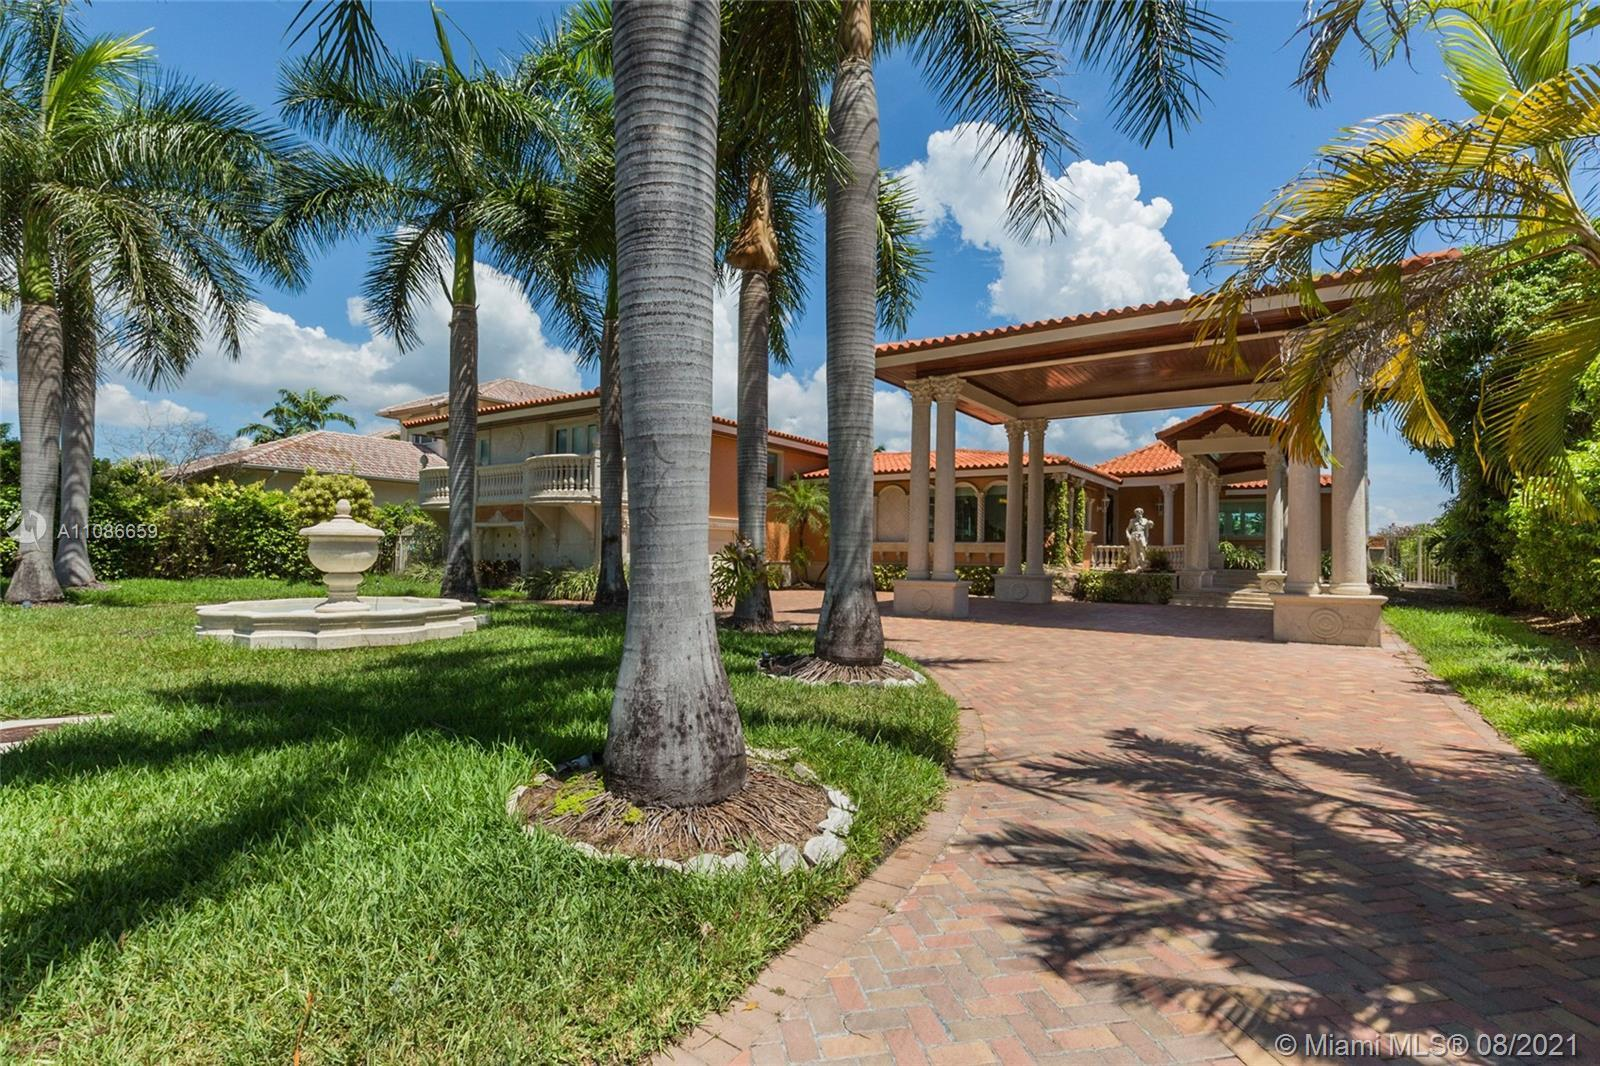 Rarely available Waterfront home located in Surfside. This custom 5 bedroom, 4.5 Bath home is nestle